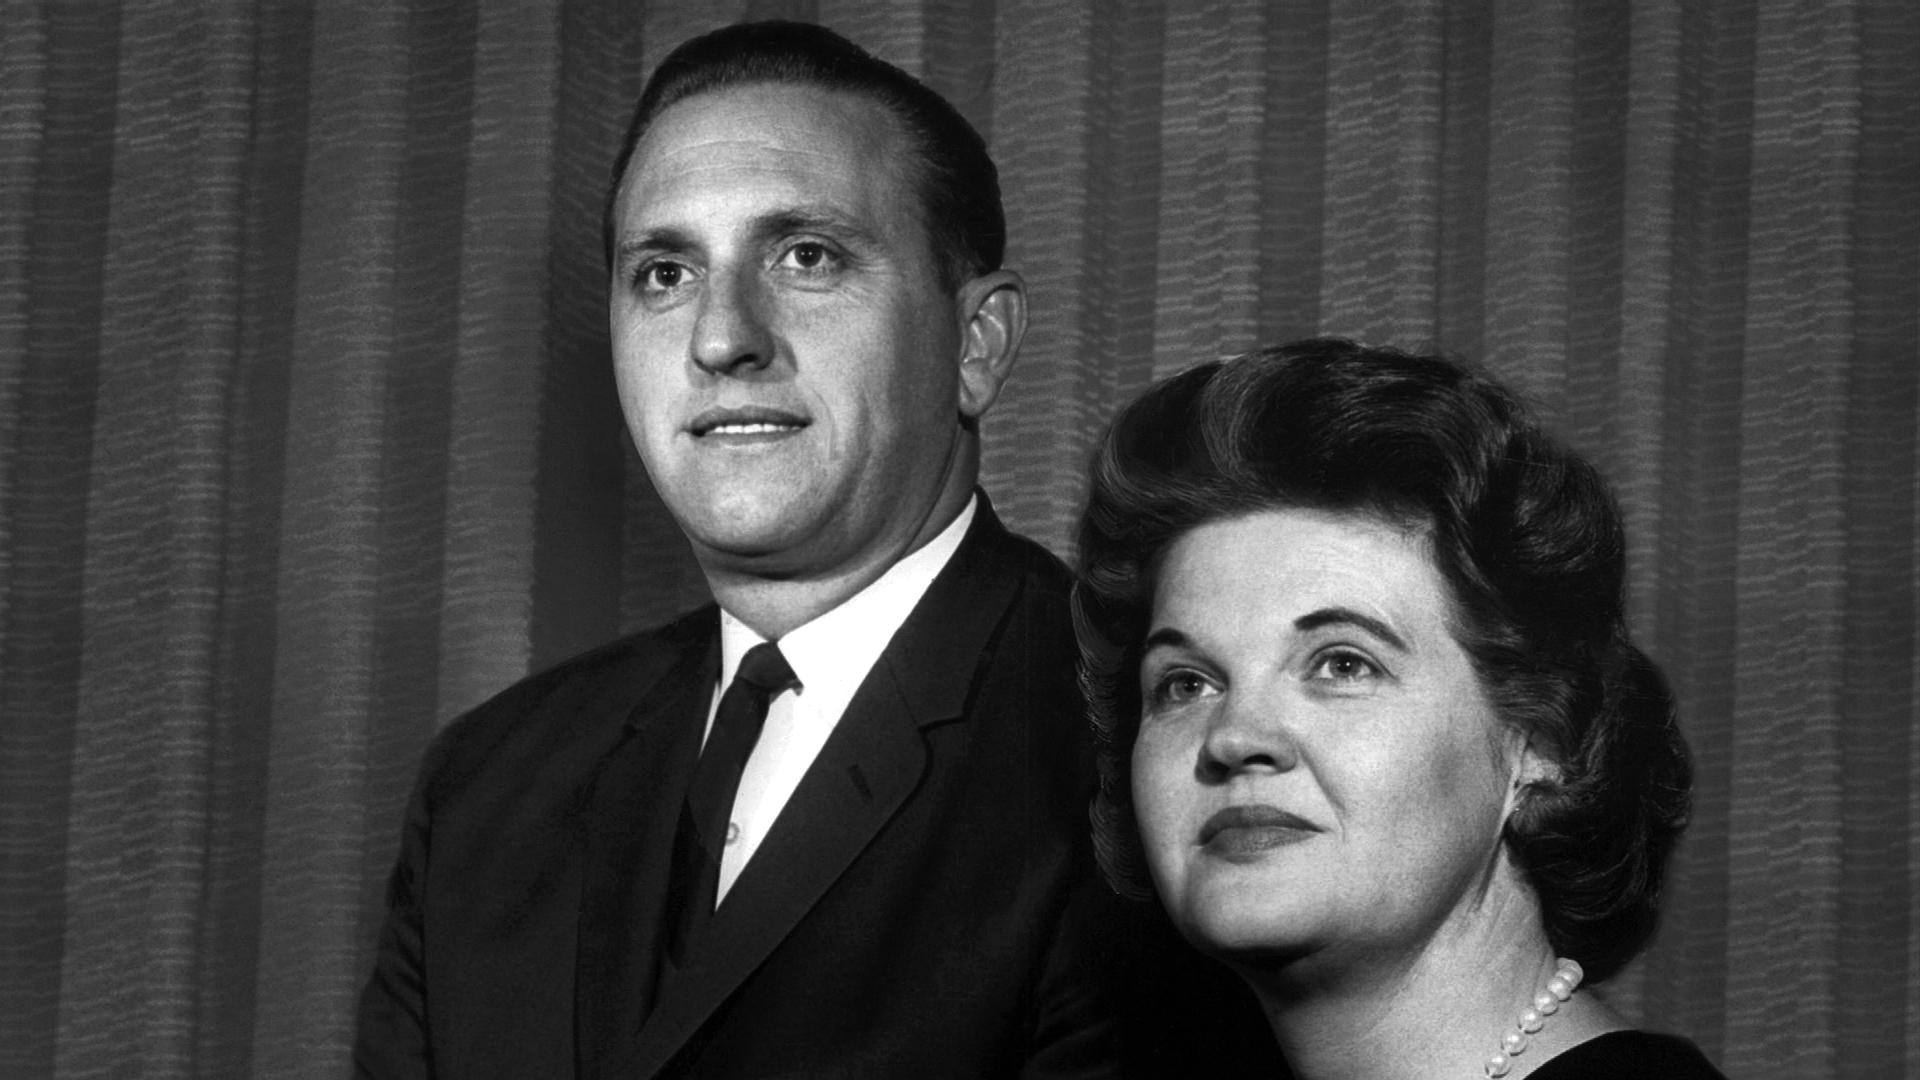 Thomas Monson and wife,{&amp;nbsp;}Francis. Monson was sustained to the Quorum of the Twelve Apostles at general conference on October 4, 1963. (Photo: MormonNewsroom.org)<p></p>